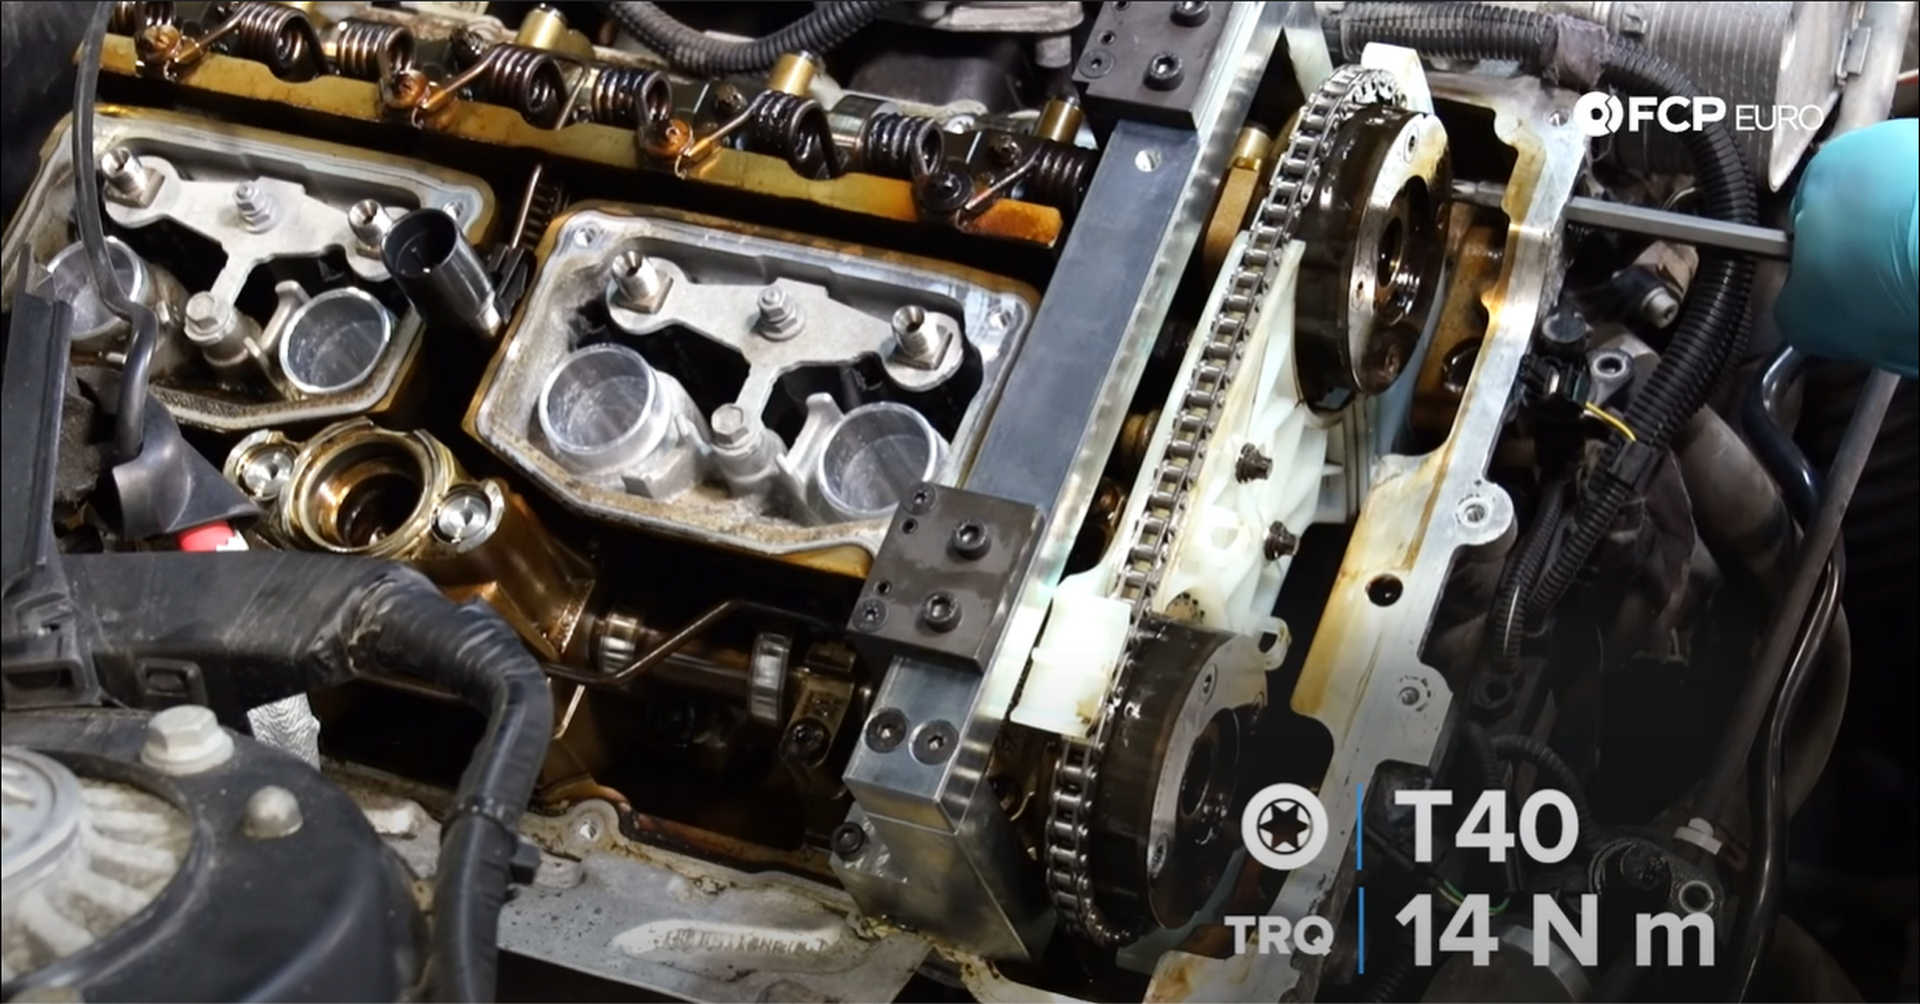 DIY BMW N20 Timing Chain tightening the chain guide pins